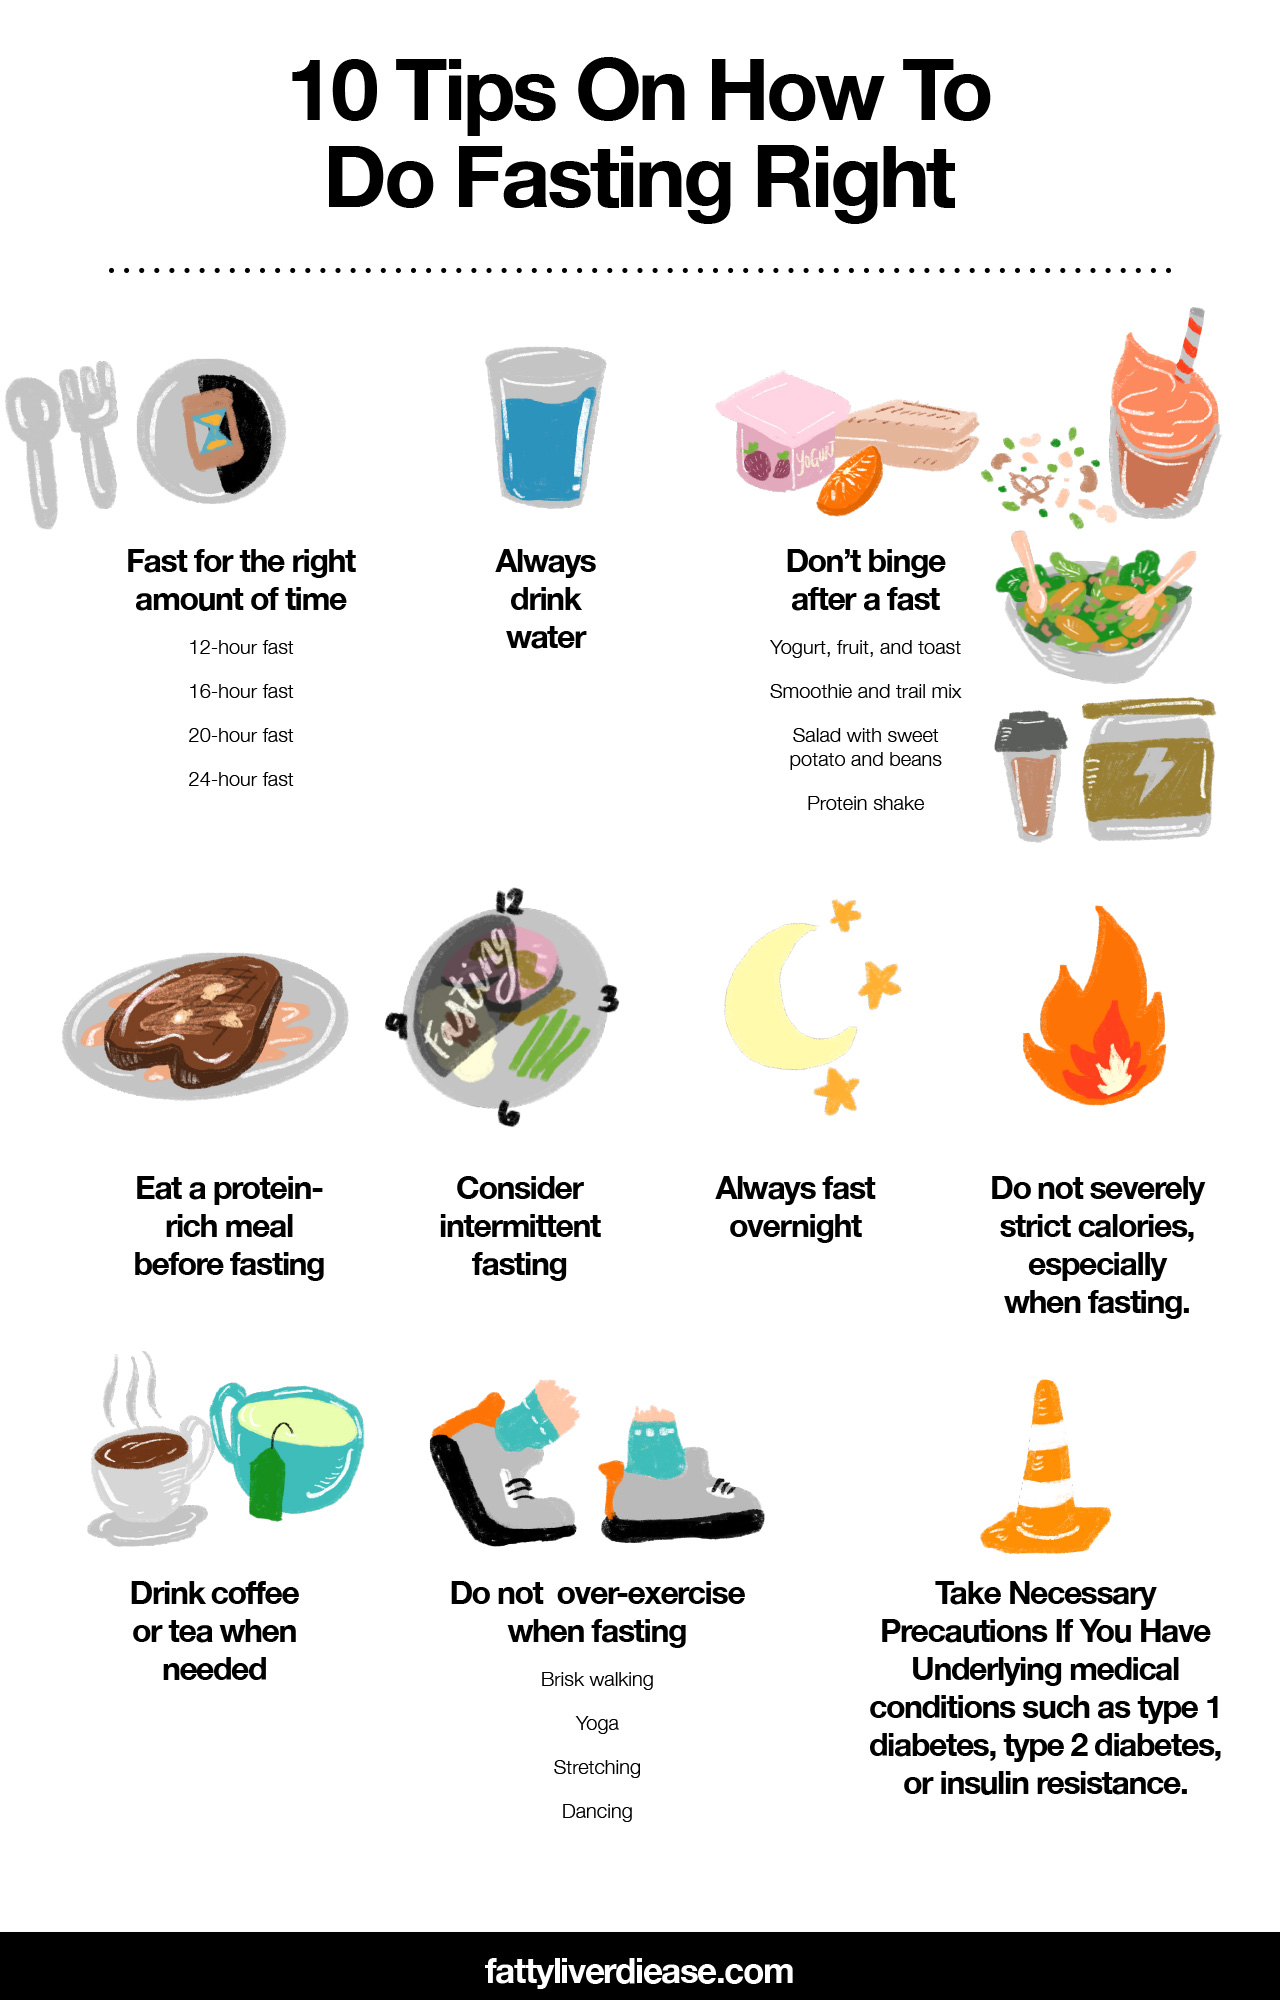 10 Tips On How To Do Fasting Right